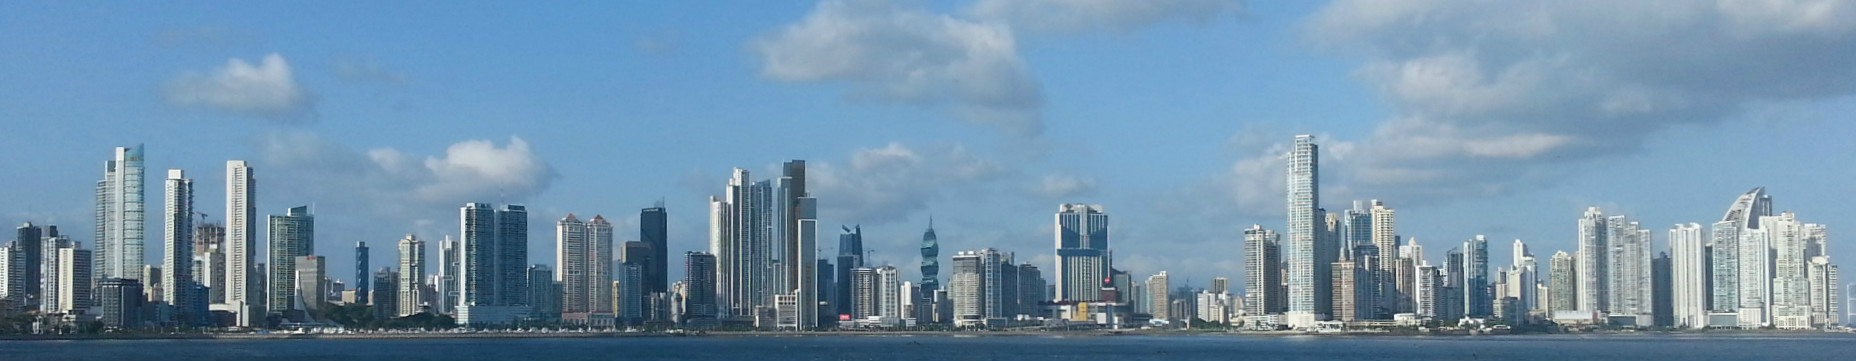 Panama City Skyline 2015